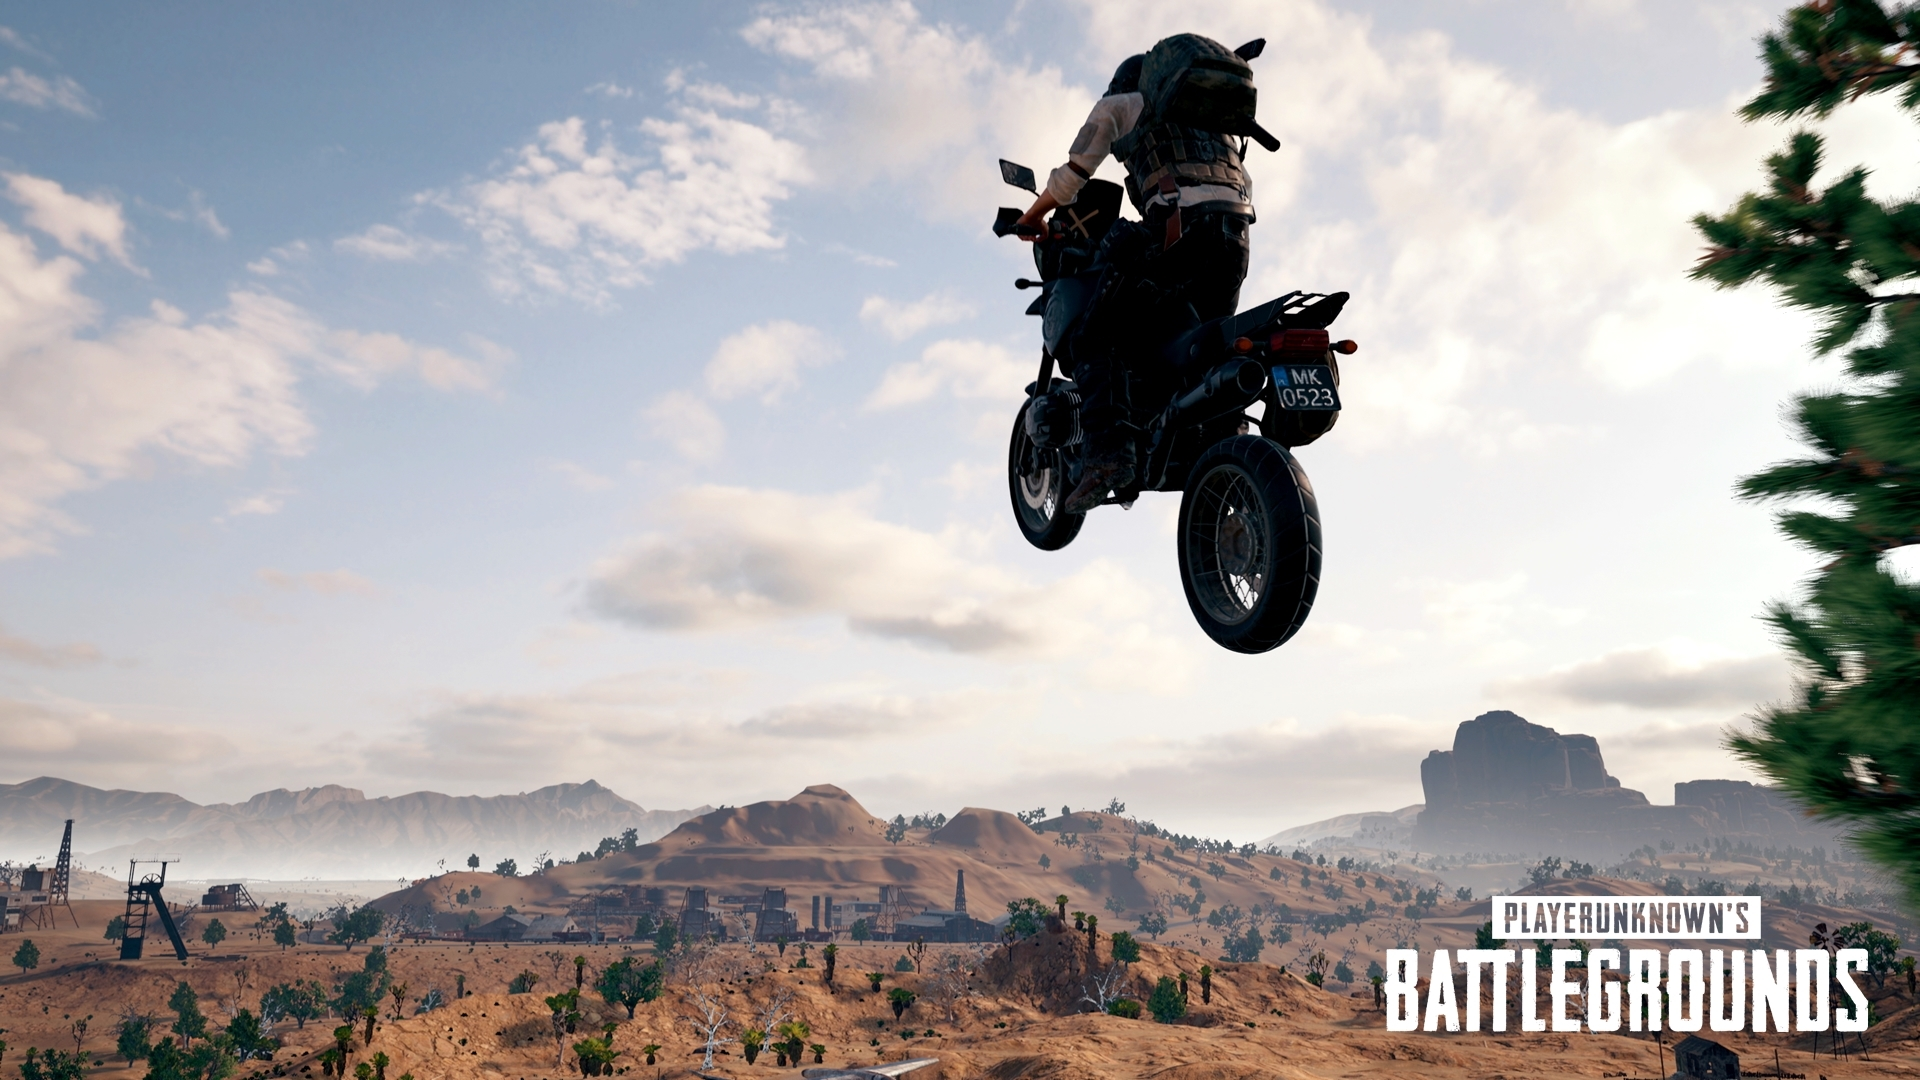 Pubg Hd Wallpaper 1920x1080 Pubattlegrounds: PUBG: Ping-based Matchmaking Coming Soon, PC Test Patch